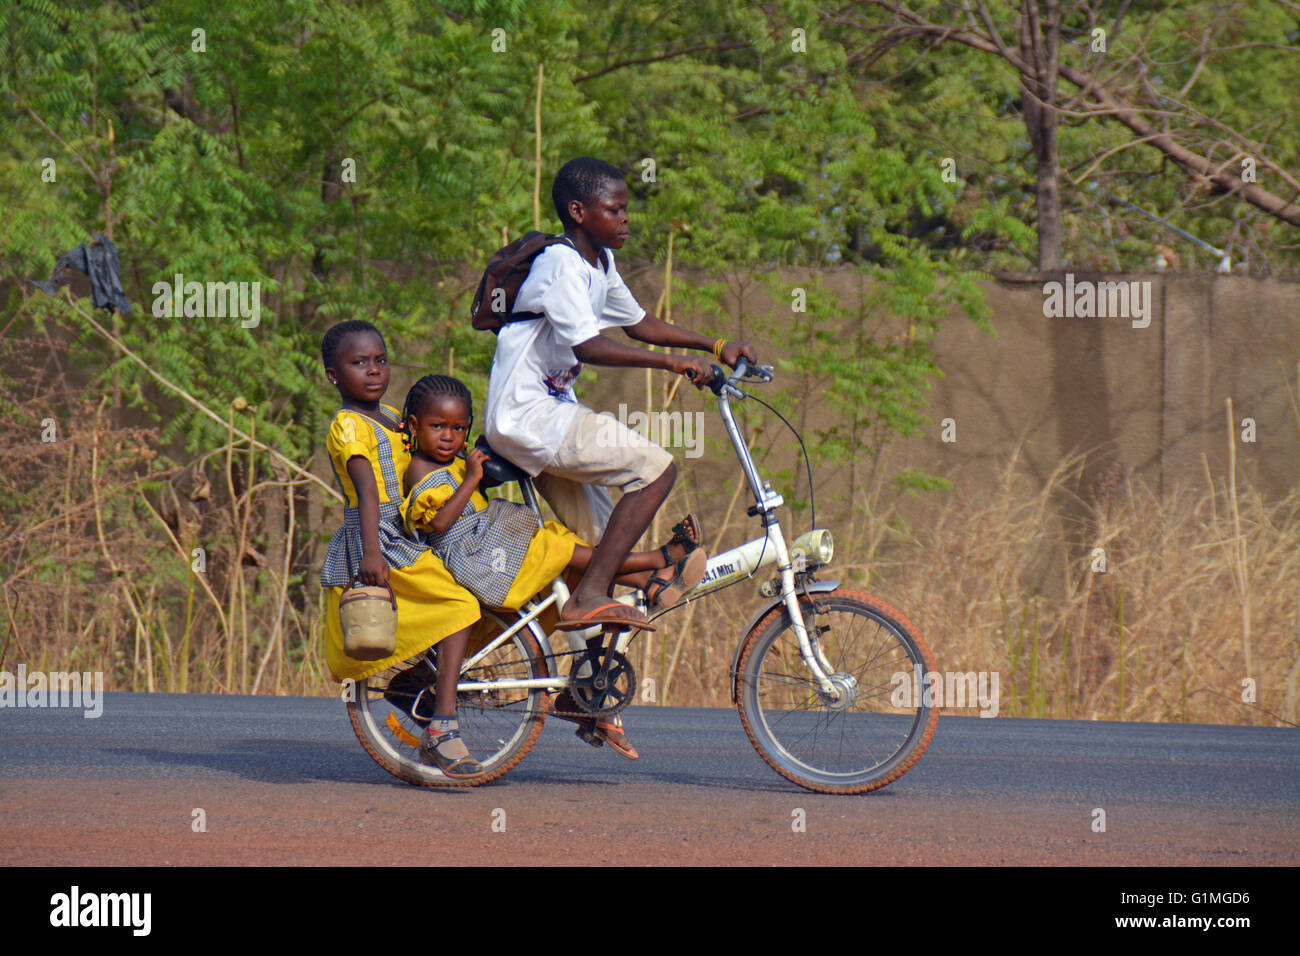 2 School kids in Ghana, being pick up with an small bicycle - Stock Image